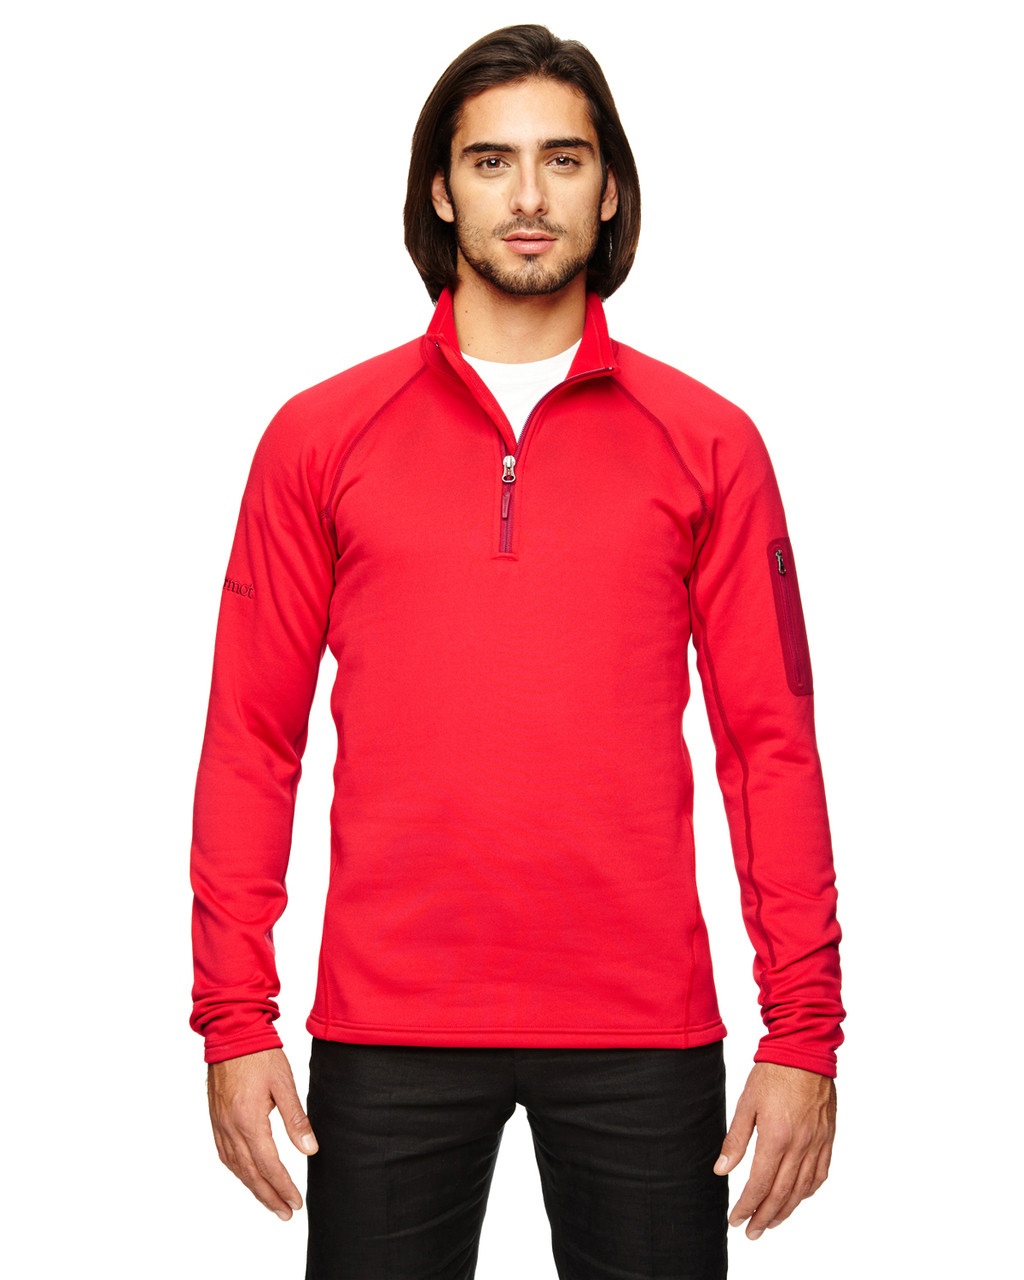 Team Red - 80890 Marmot Men's Stretch Fleece Half-Zip Sweatshirt | BlankClothing.ca